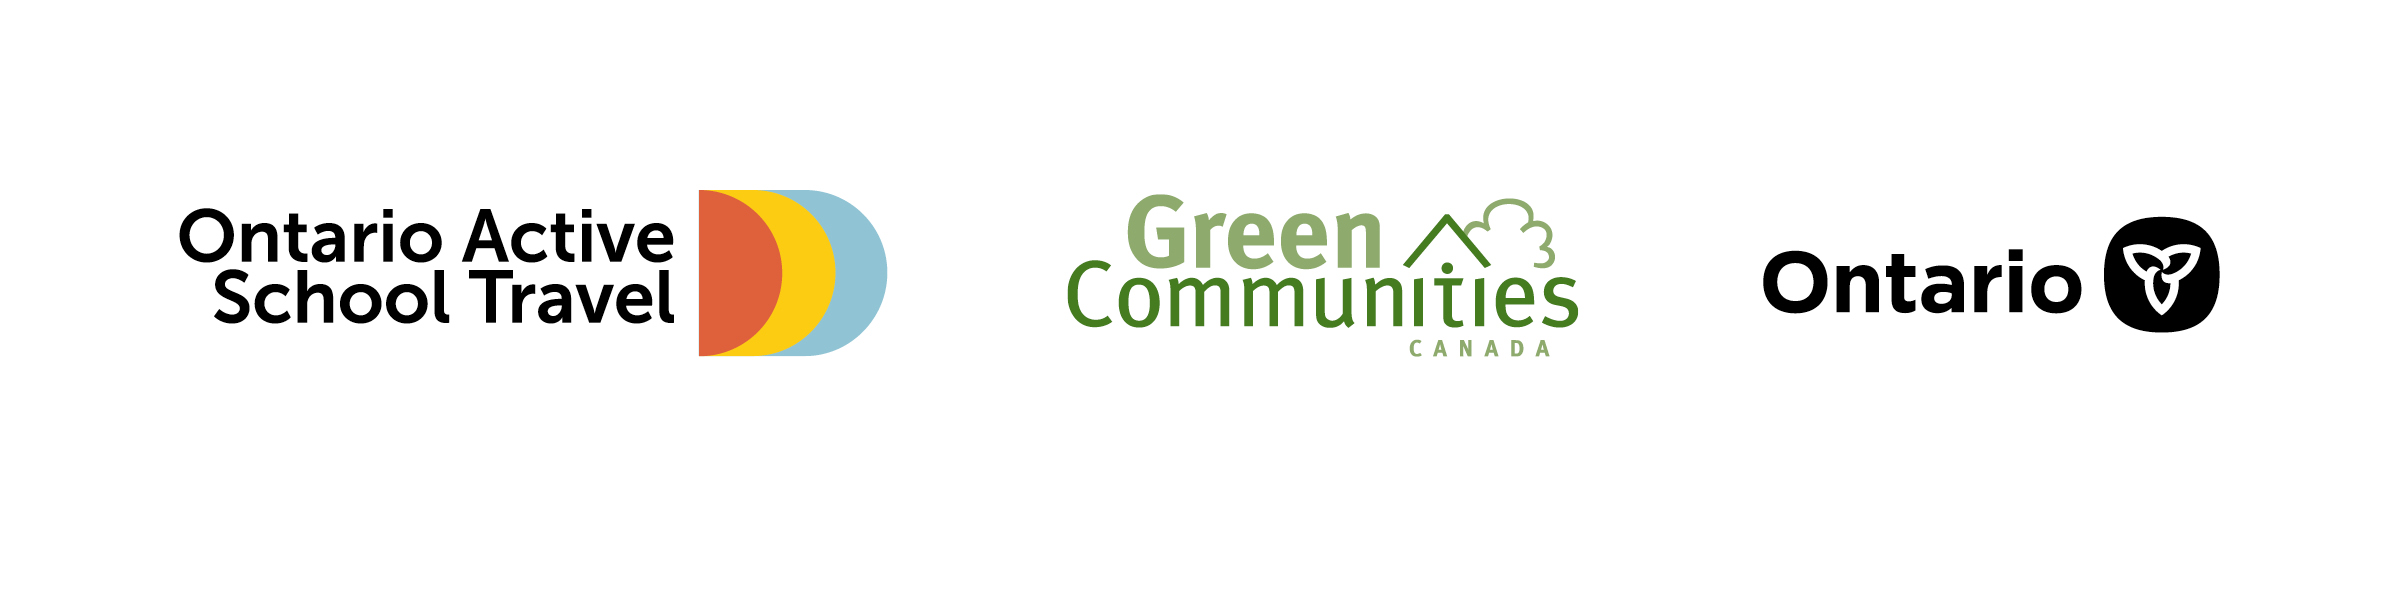 Green Communities Canada and the Government of Ontario